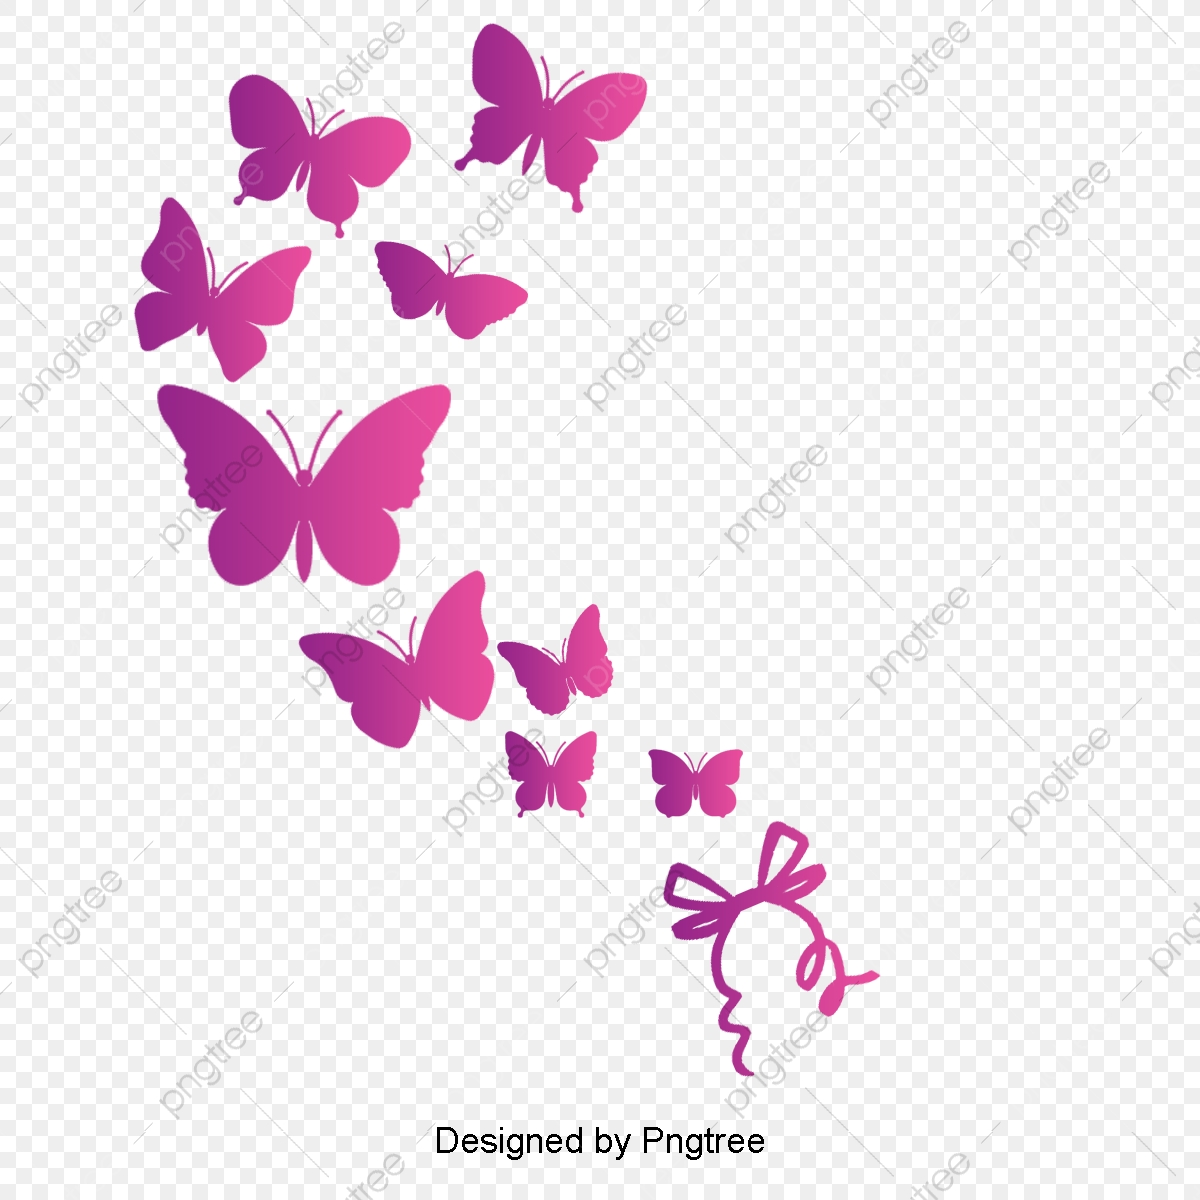 Pink Butterfly, Pink, Butterfly, Vector PNG Transparent Clipart